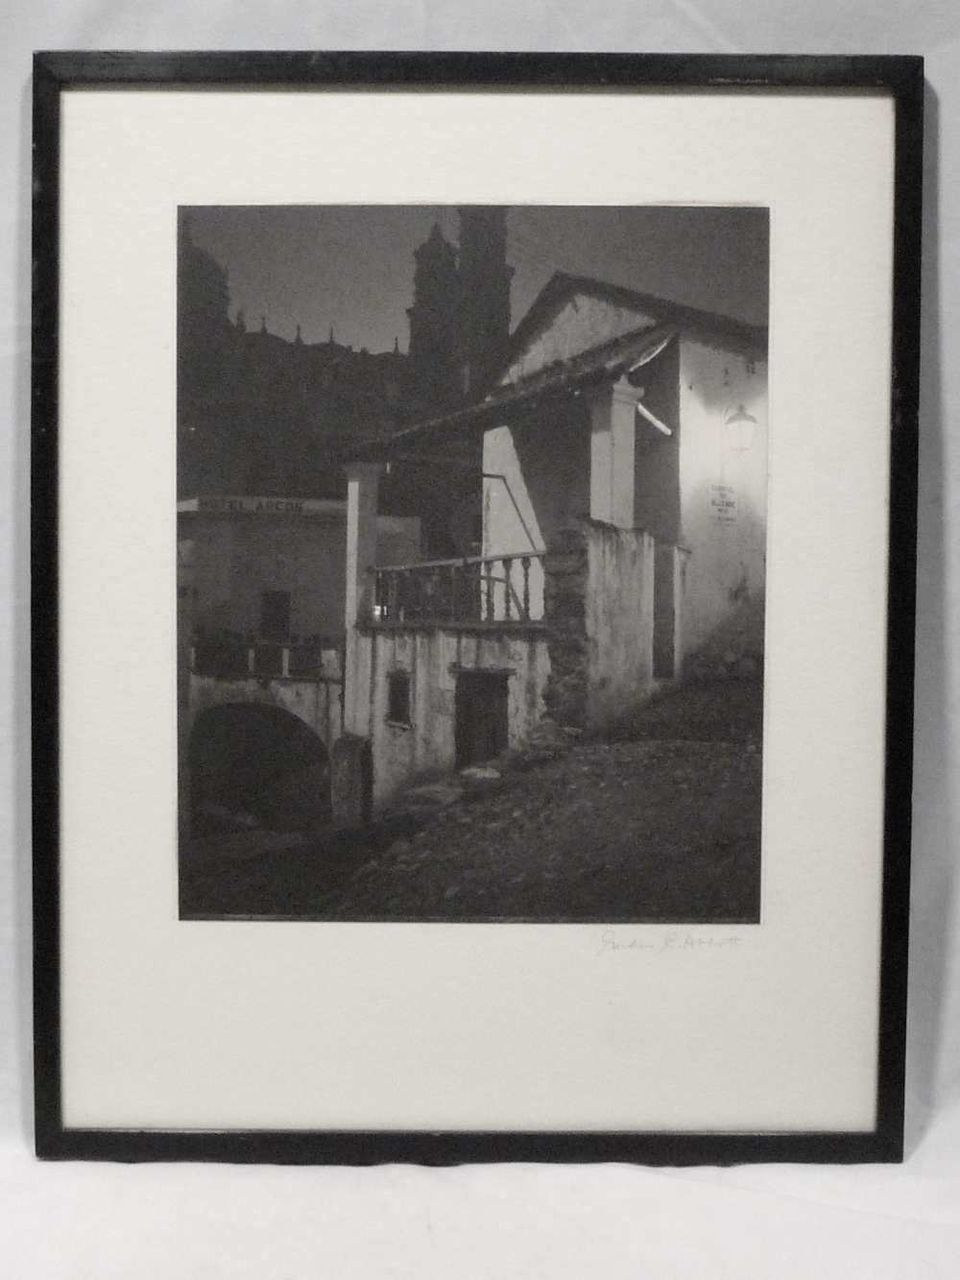 Gordon C. Abbott Signed Original Photo Hotel Arcos 1930s-40s